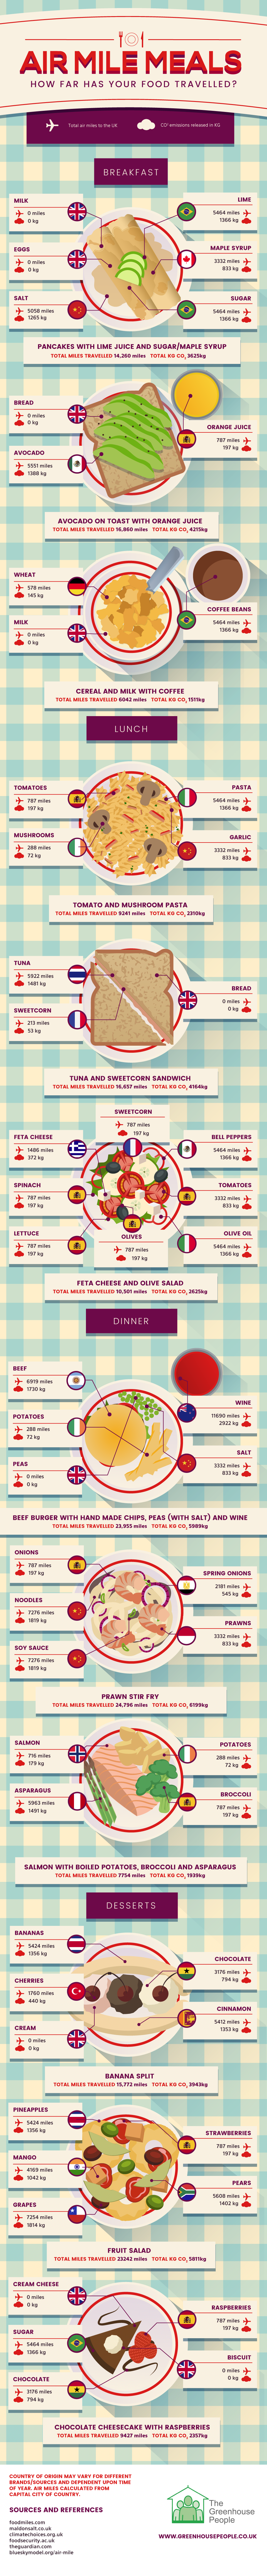 Air Mile Meals Infographic